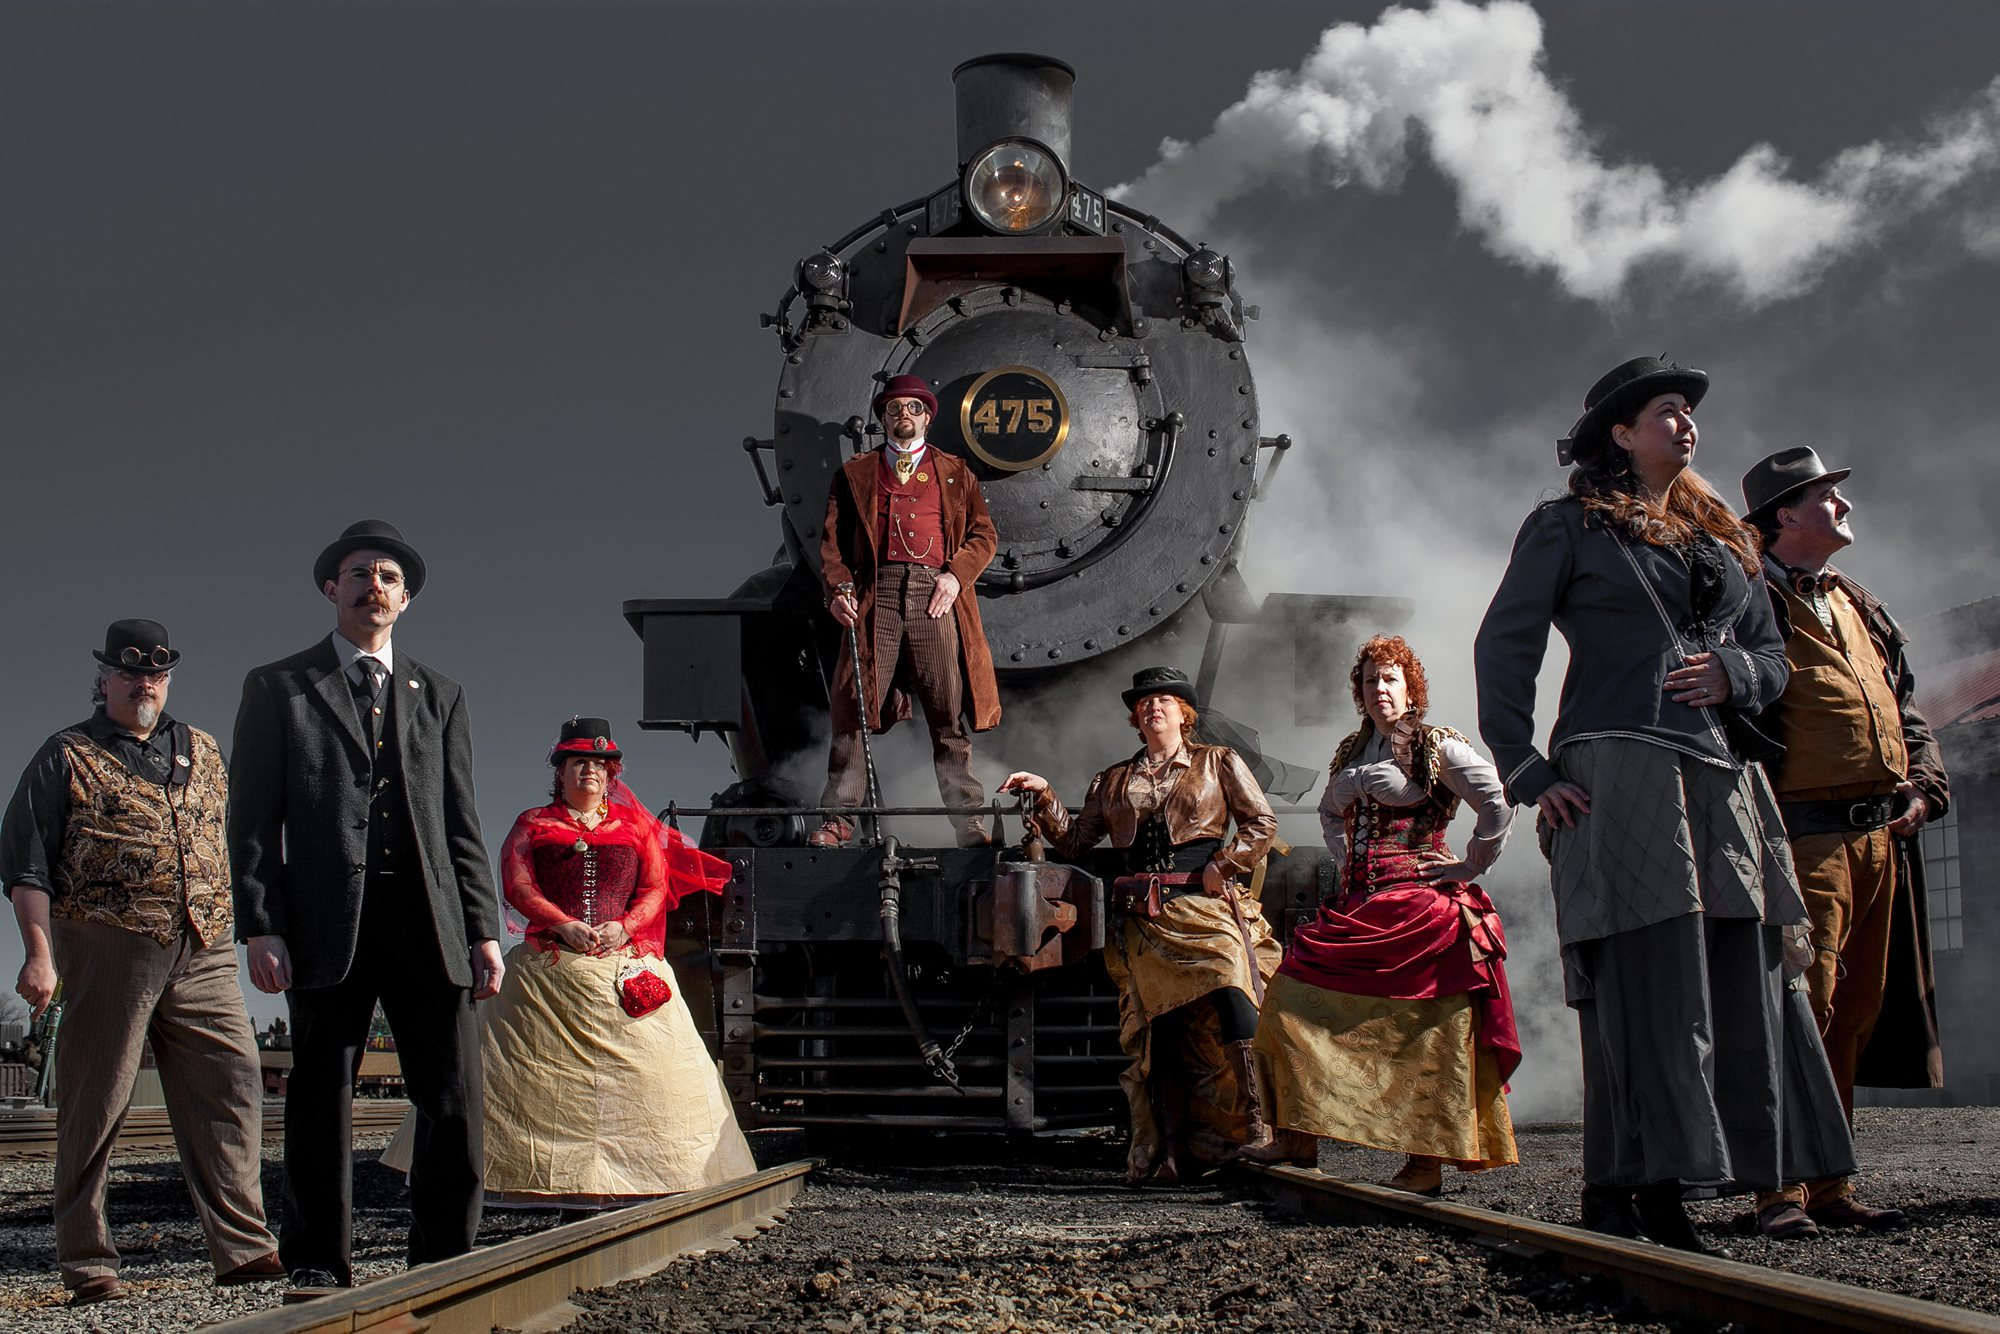 Steampunk UnLimited at the Strasburg Rail Road